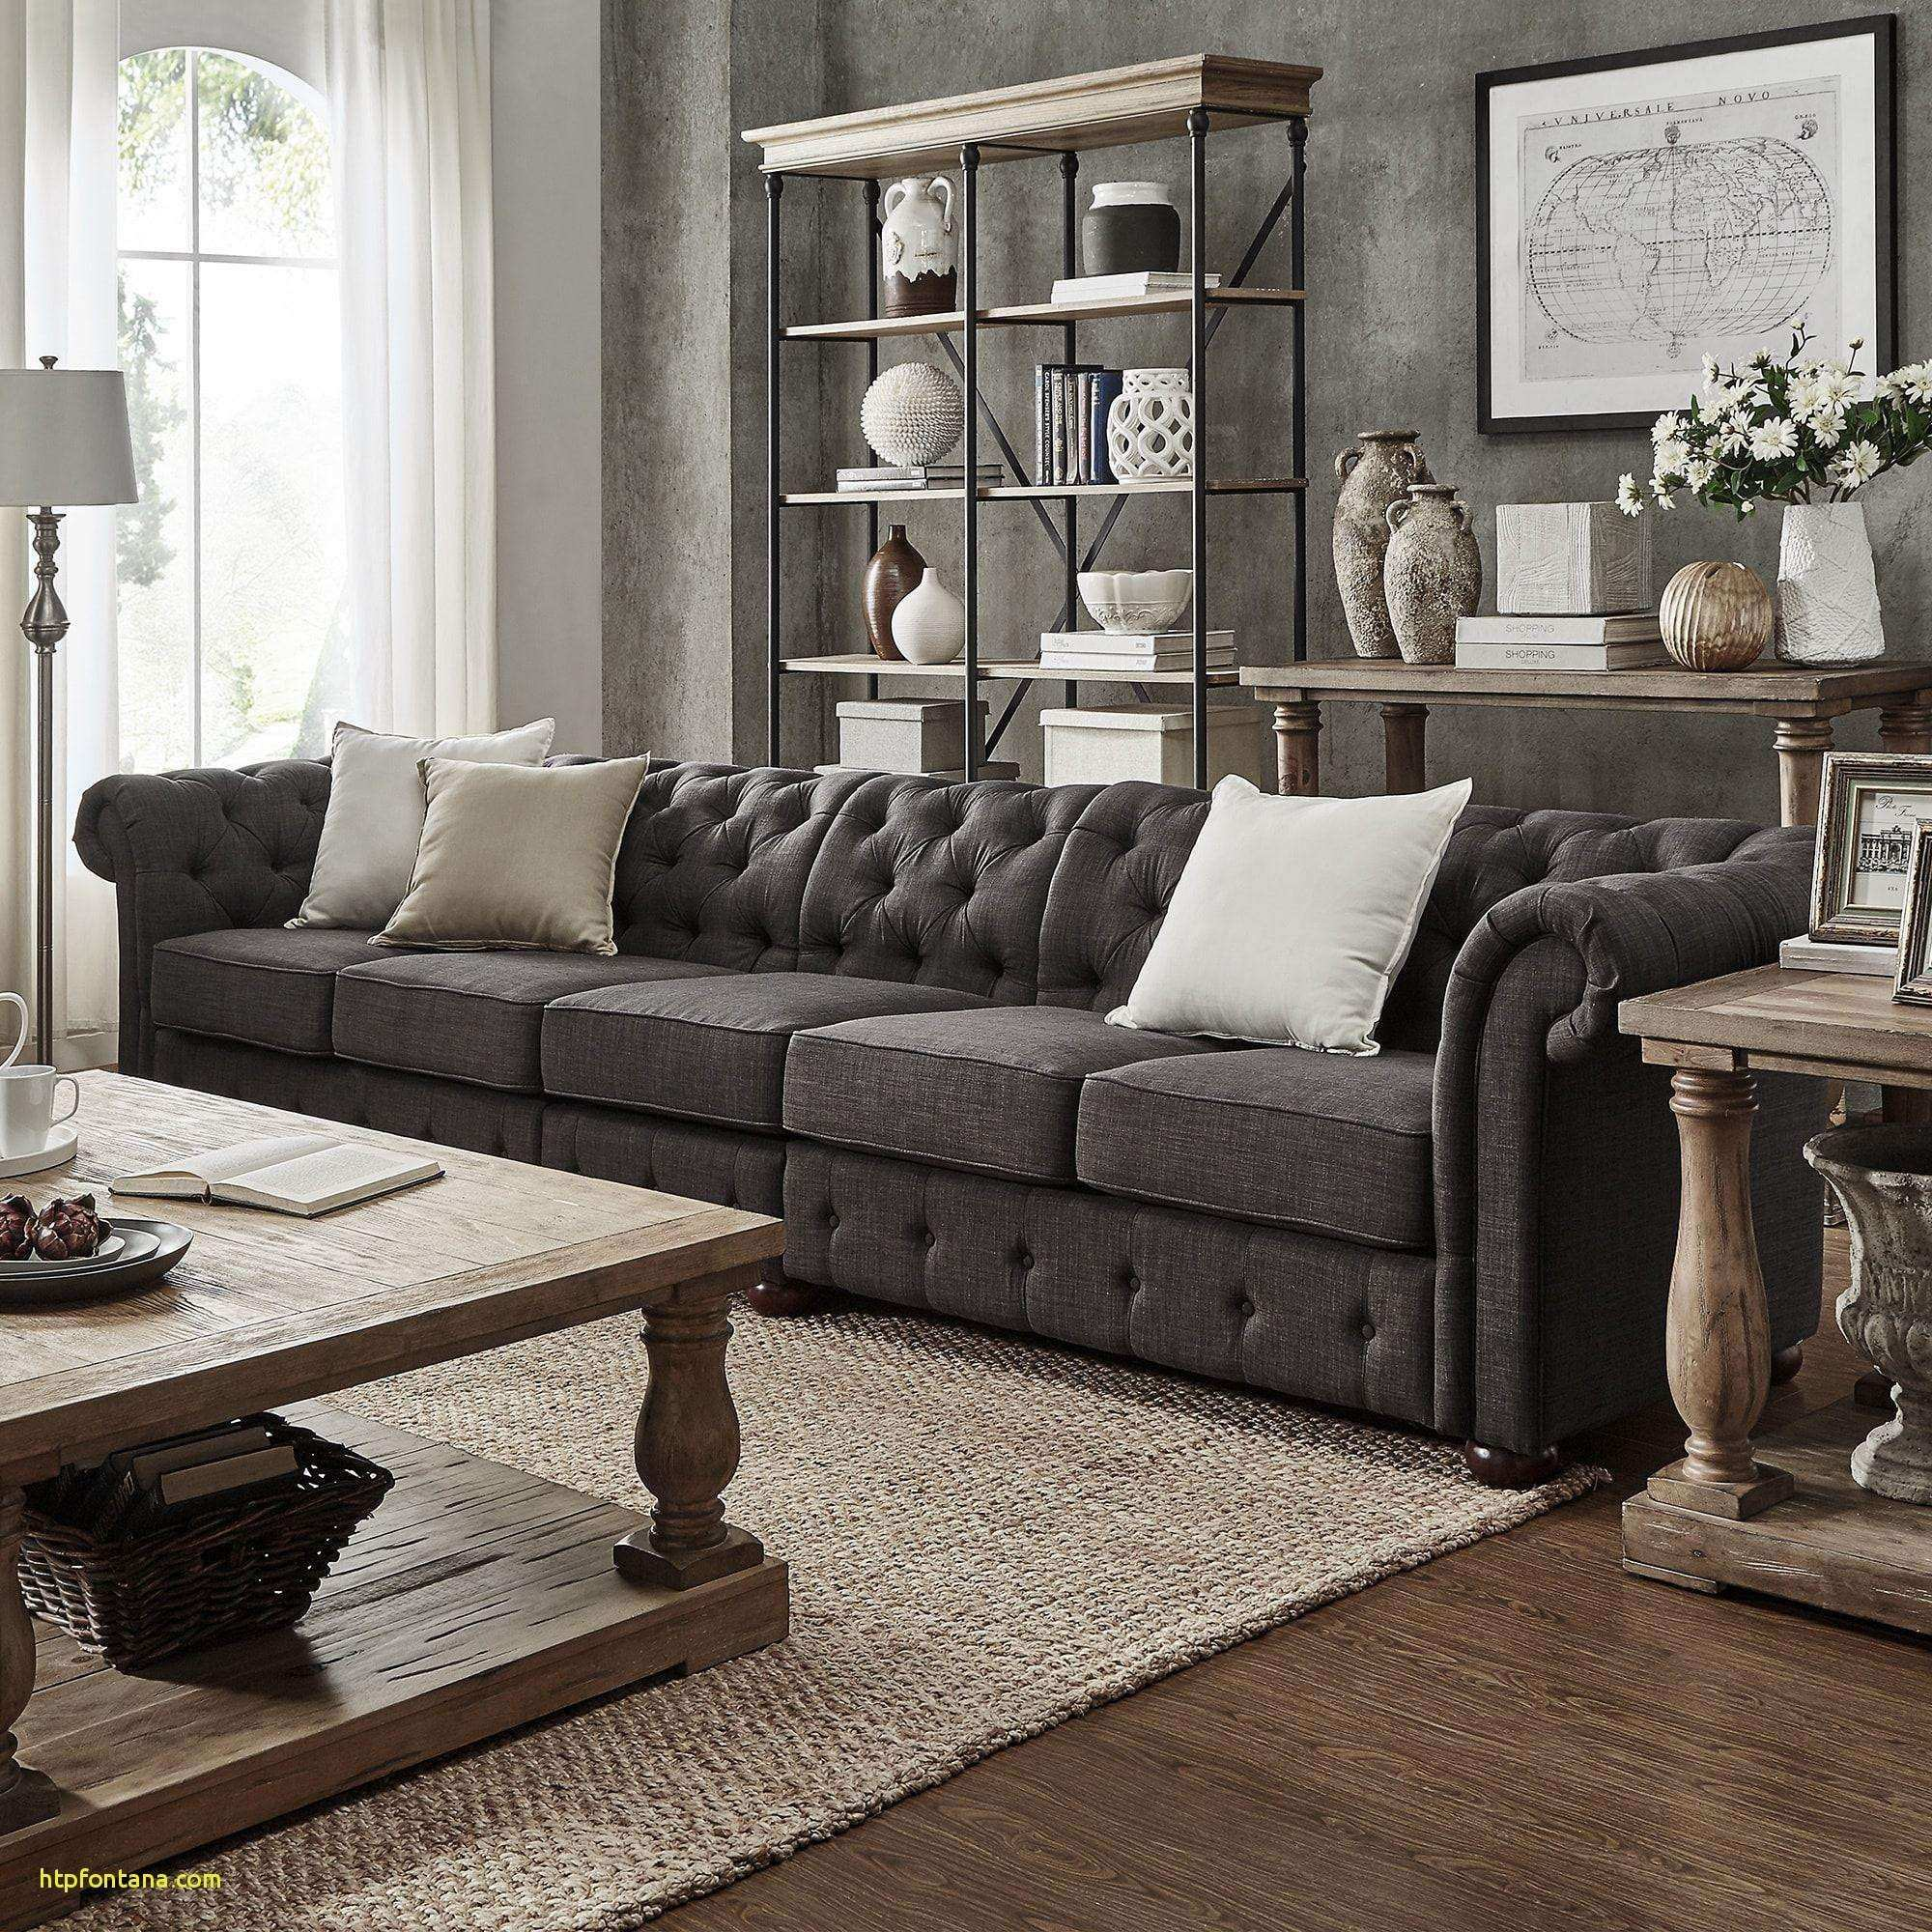 Living Room Decorating Ideas Best Living Room Design Gray Couch